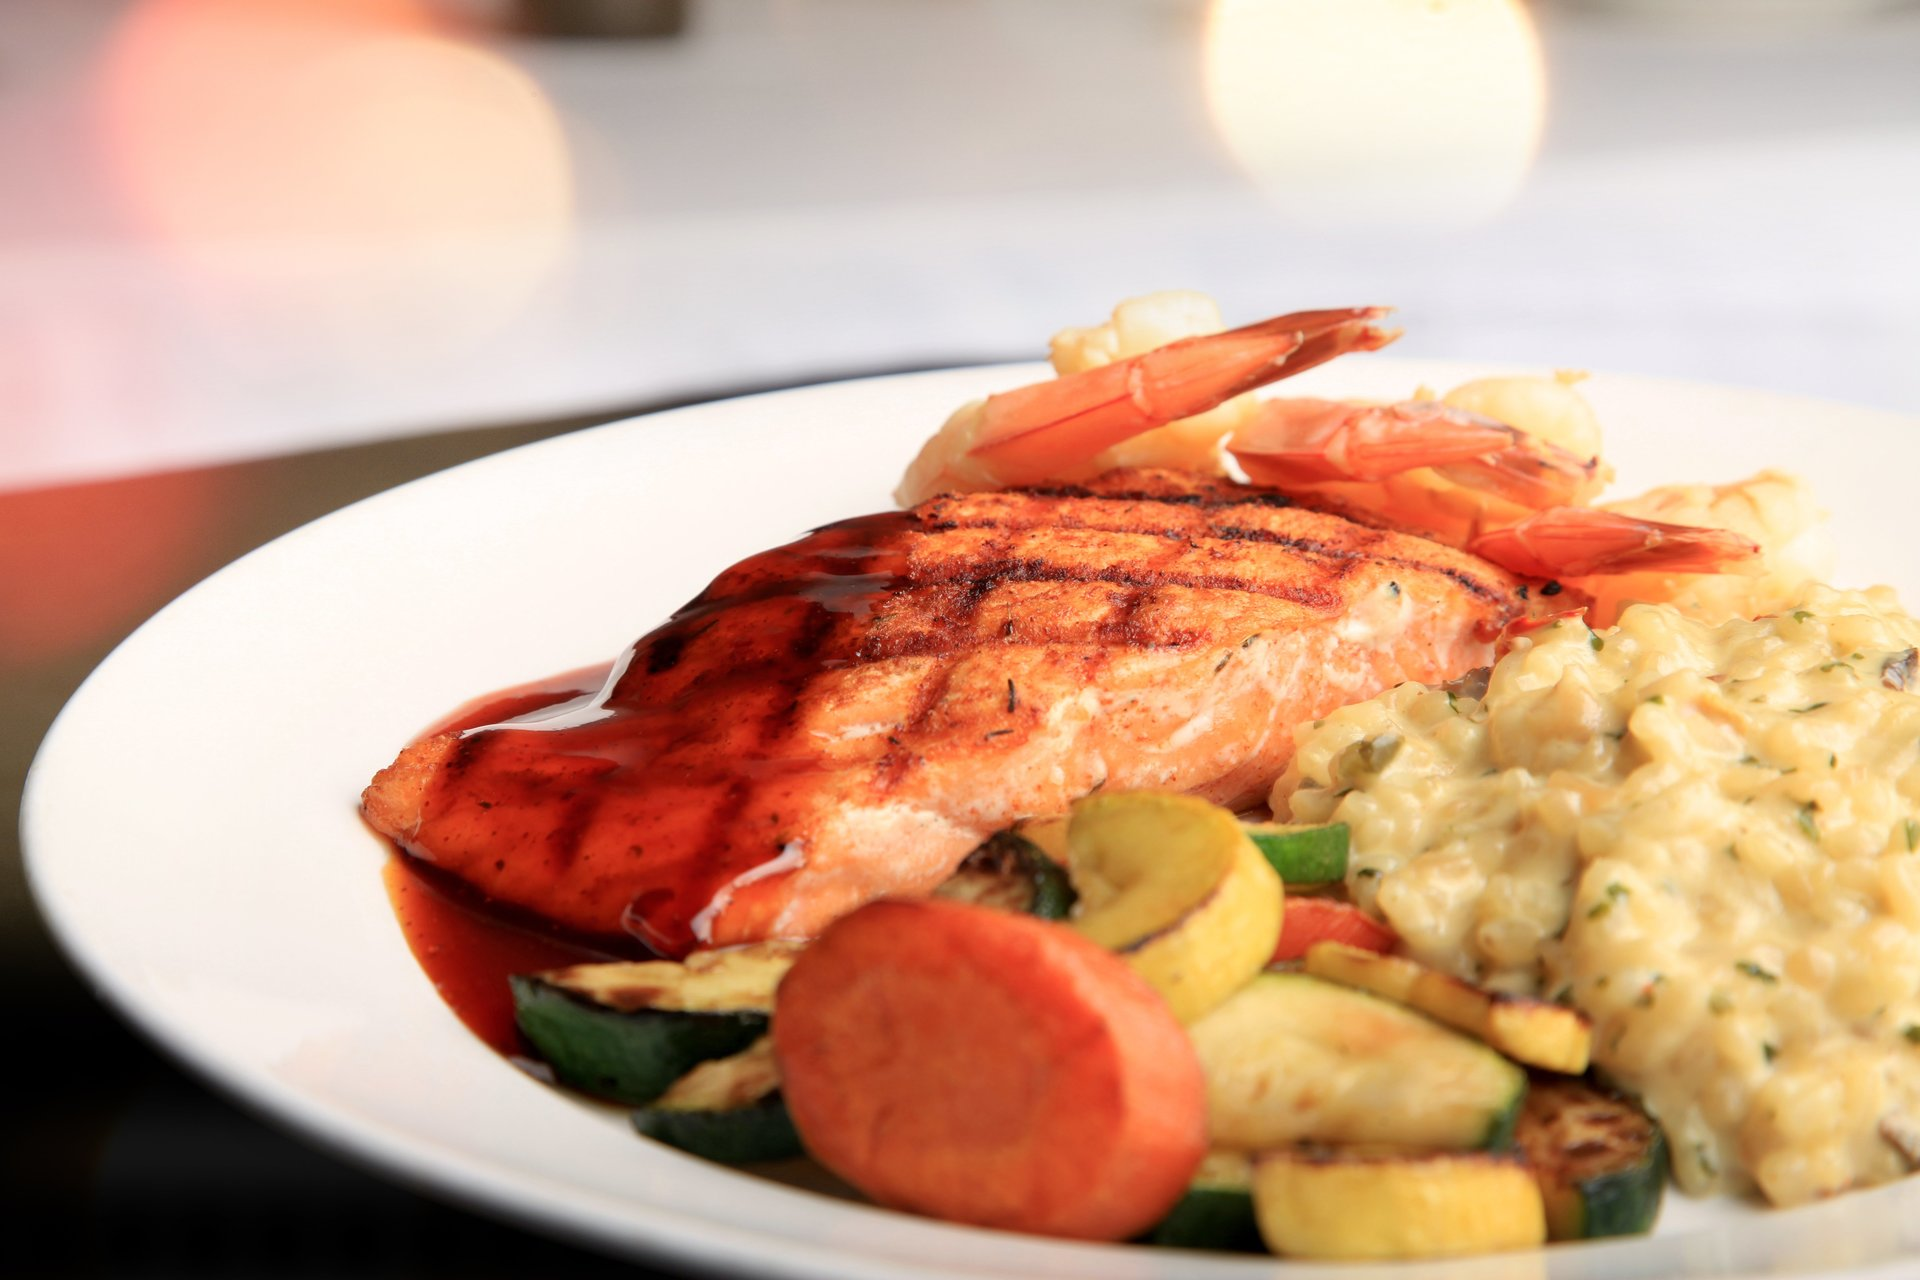 Grilled Salmon - Topped with your choice of bourbon sauce or shrimp, lemon butter garlic sauce.